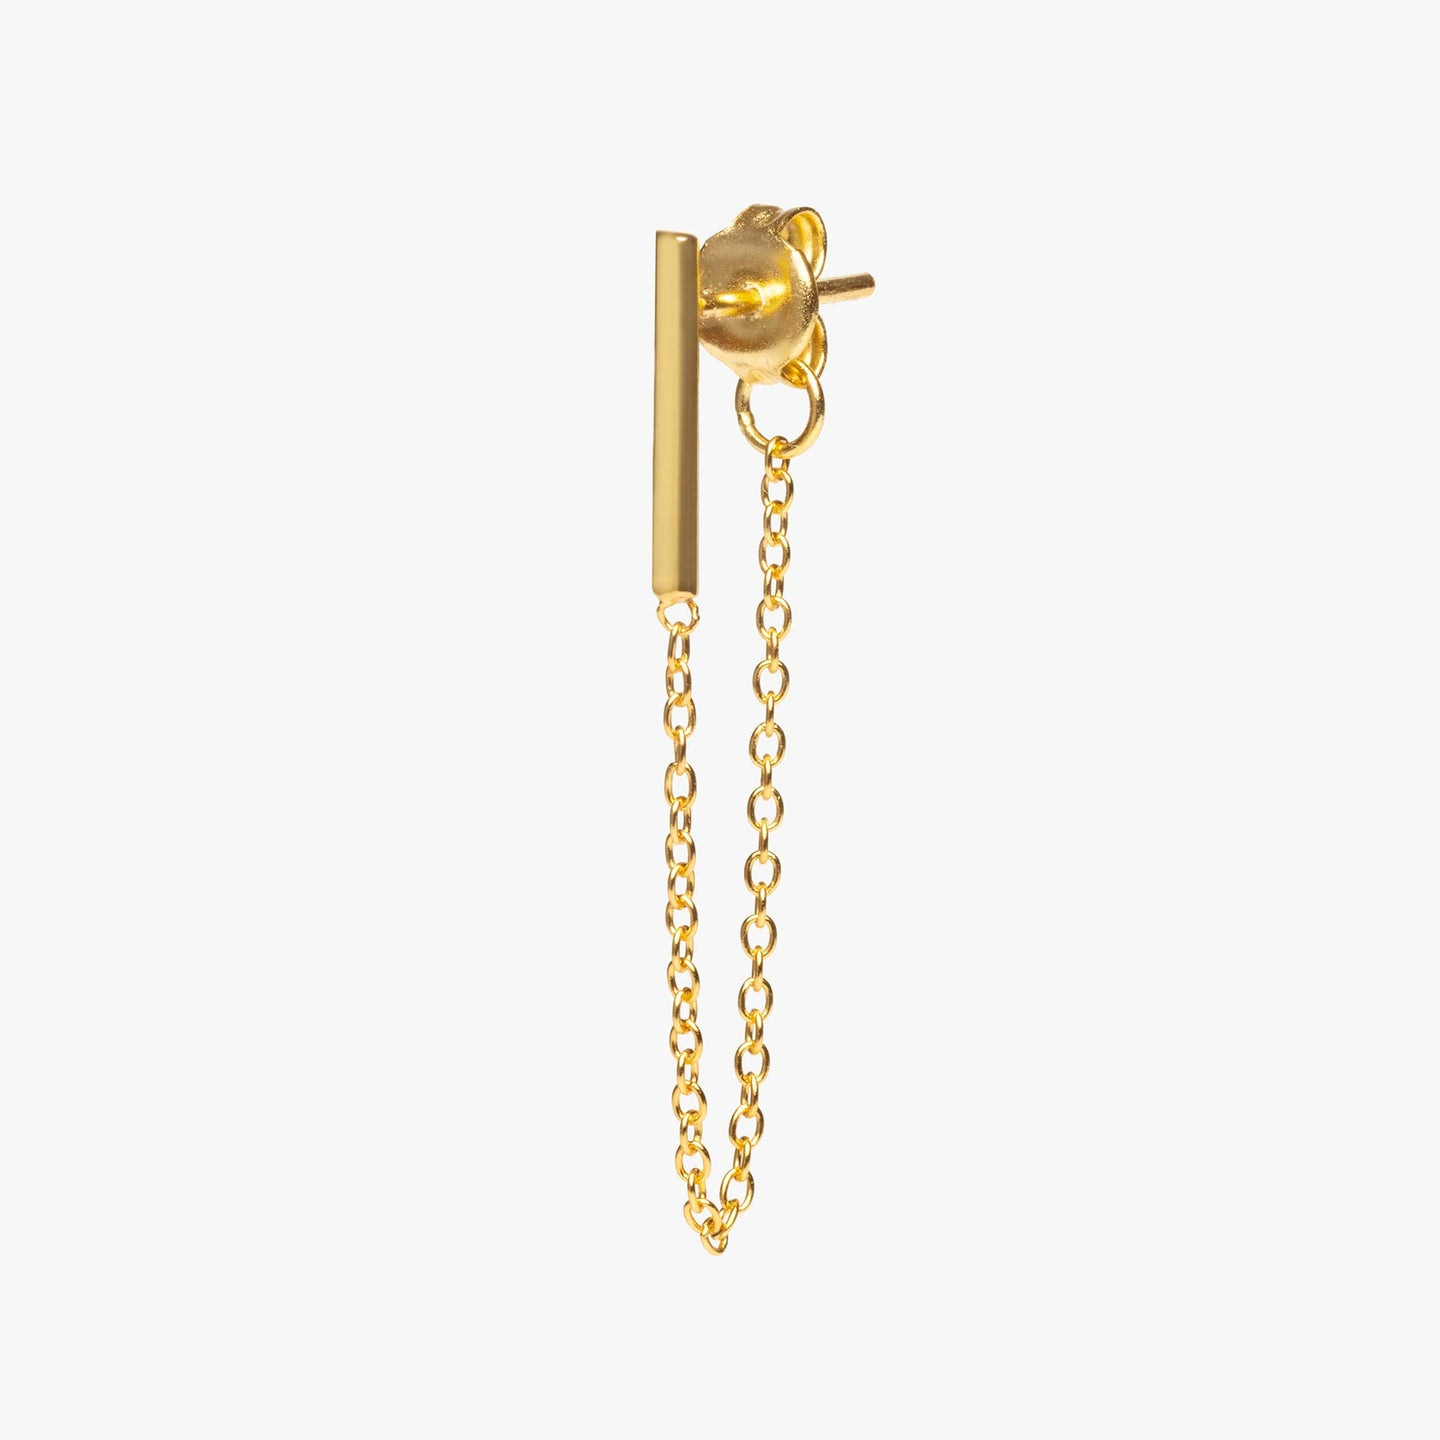 Gold bar earring with chain linked from front to back. color:gold